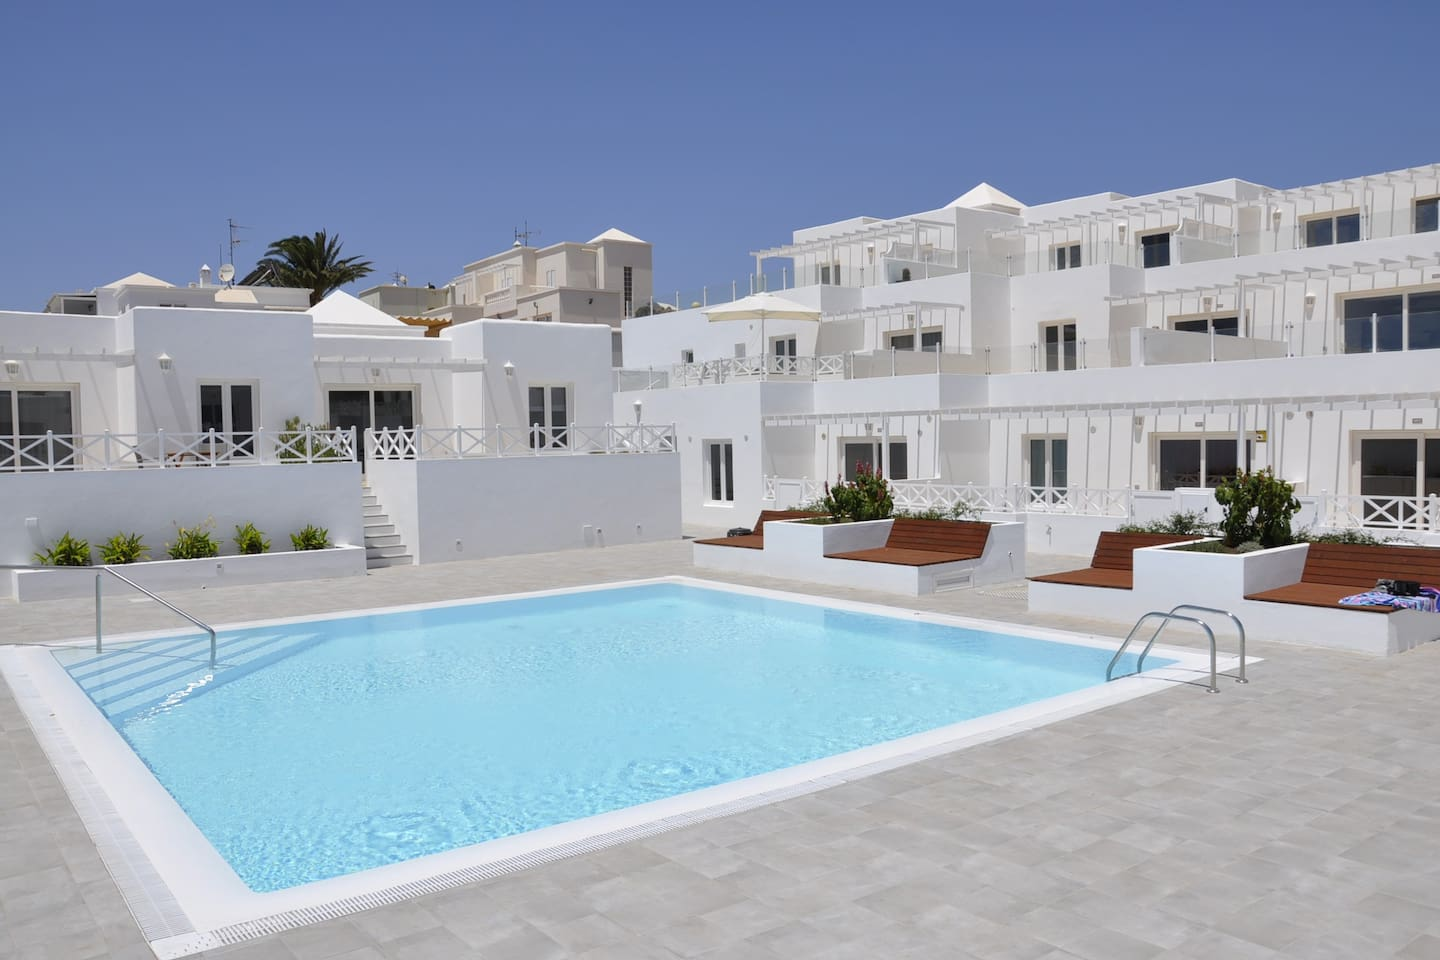 Apartment/Bungalow, Flower Beach, Urb.Playa Concha - Bungalows for ...